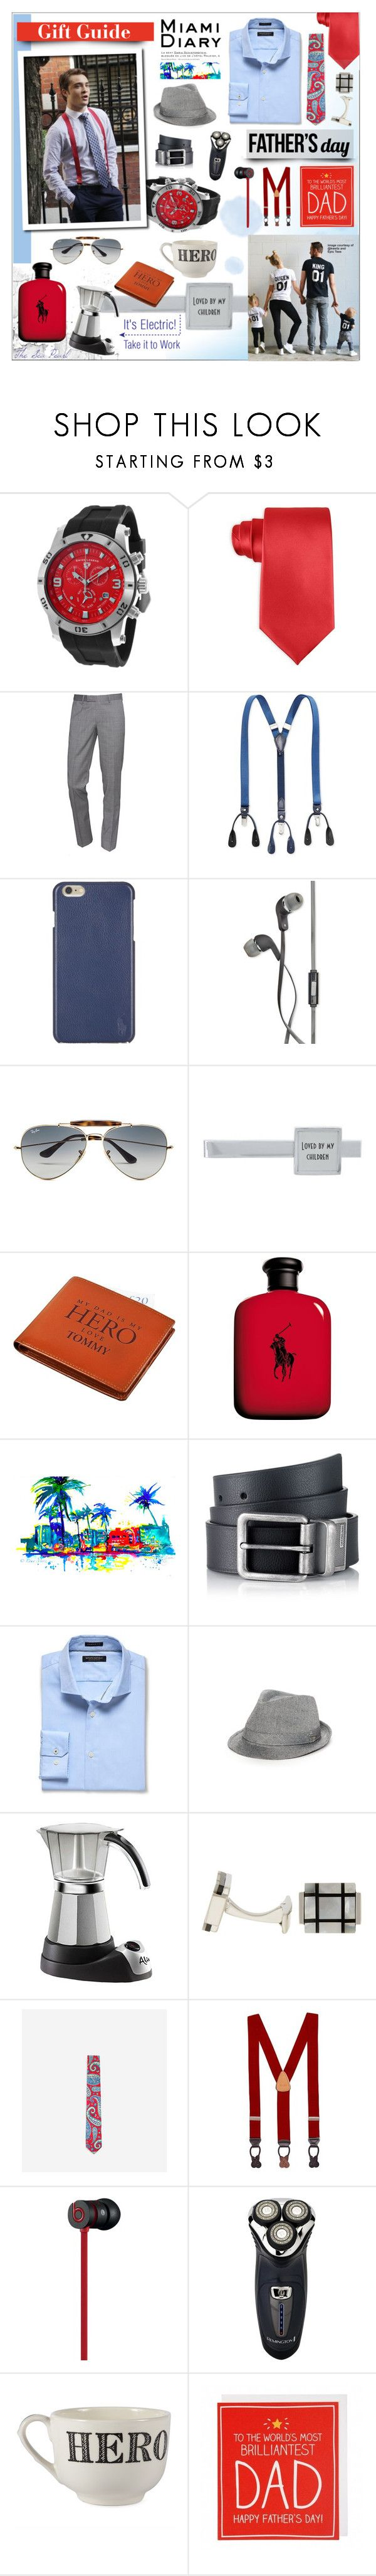 """Father's Day Gift Guide: For the Hero & King of our home"" by theseapearl ❤ liked on Polyvore featuring Swiss Legend, John Ashford, The Kooples, Tommy Hilfiger, Polo Ralph Lauren, Polaroid, Ray-Ban, Ralph Lauren, Calvin Klein Jeans and Banana Republic"